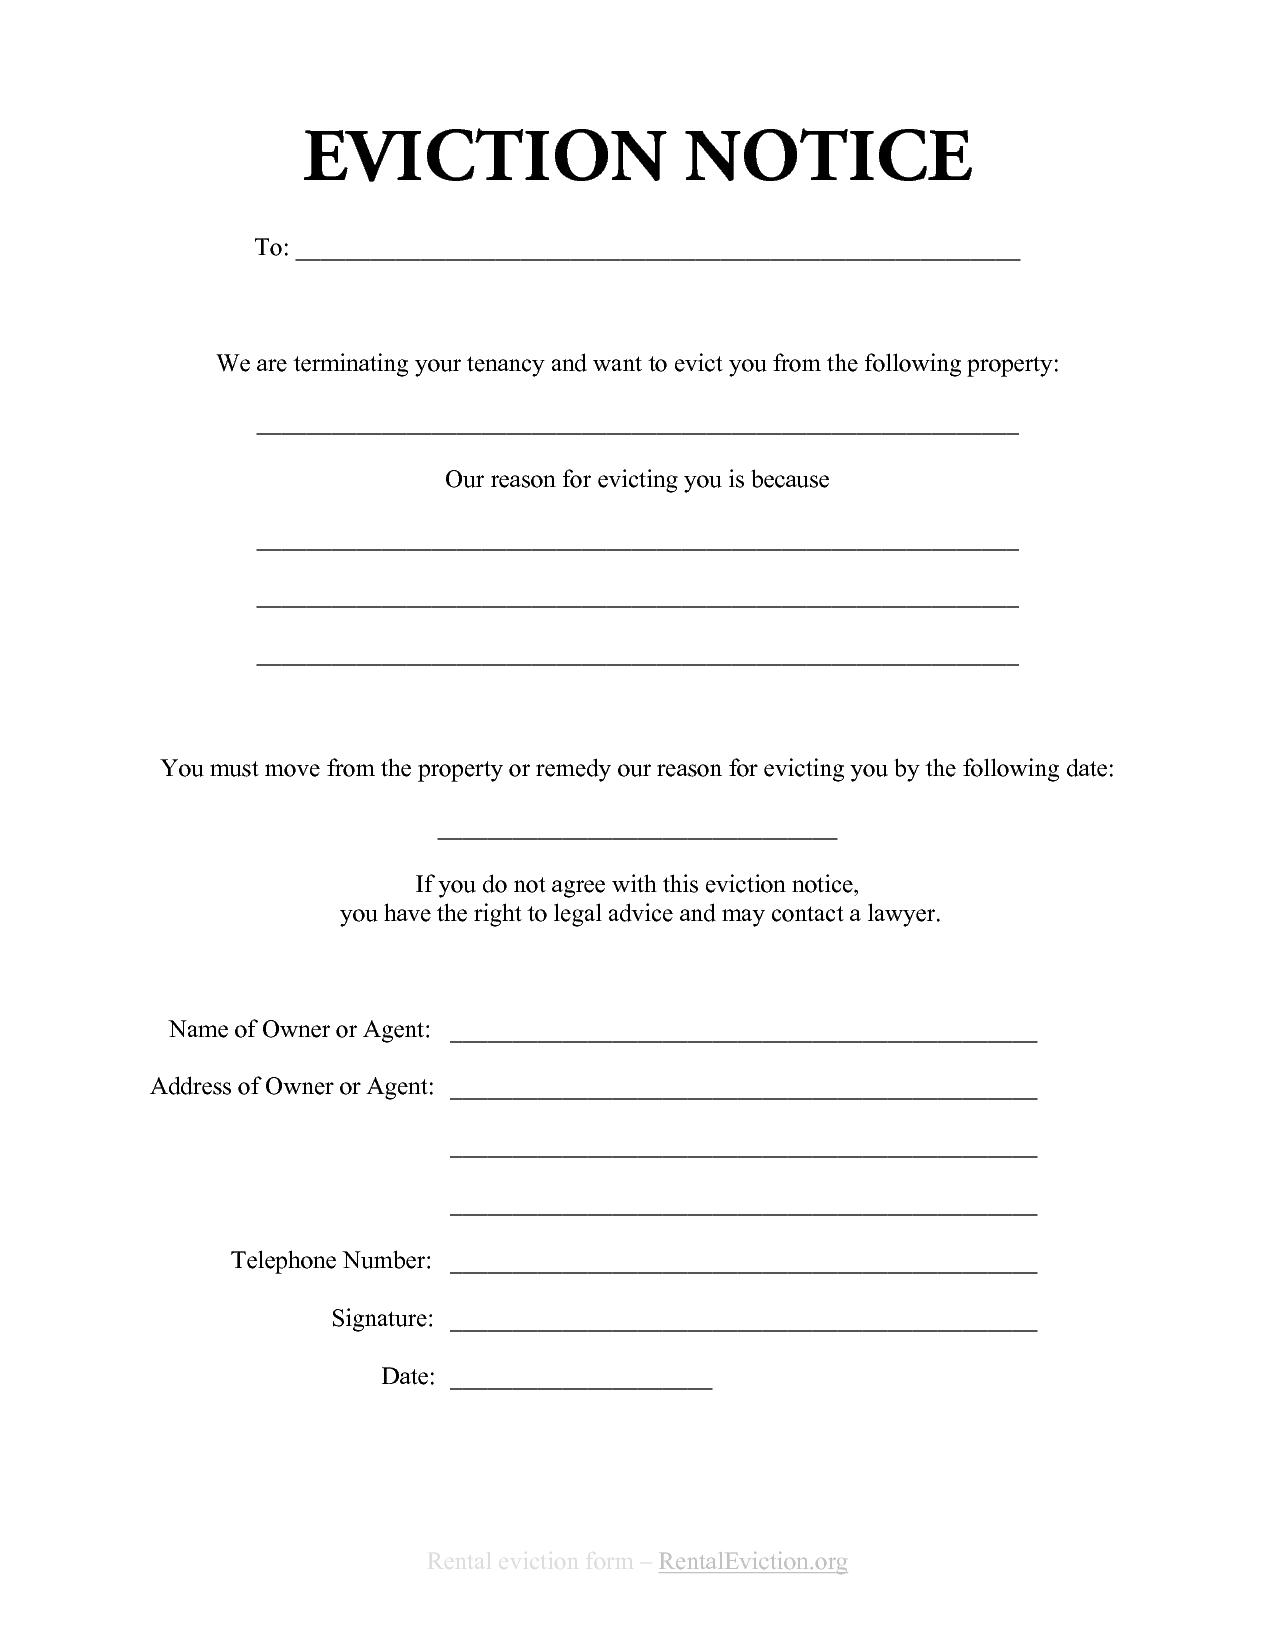 Eviction Warning Letter Template